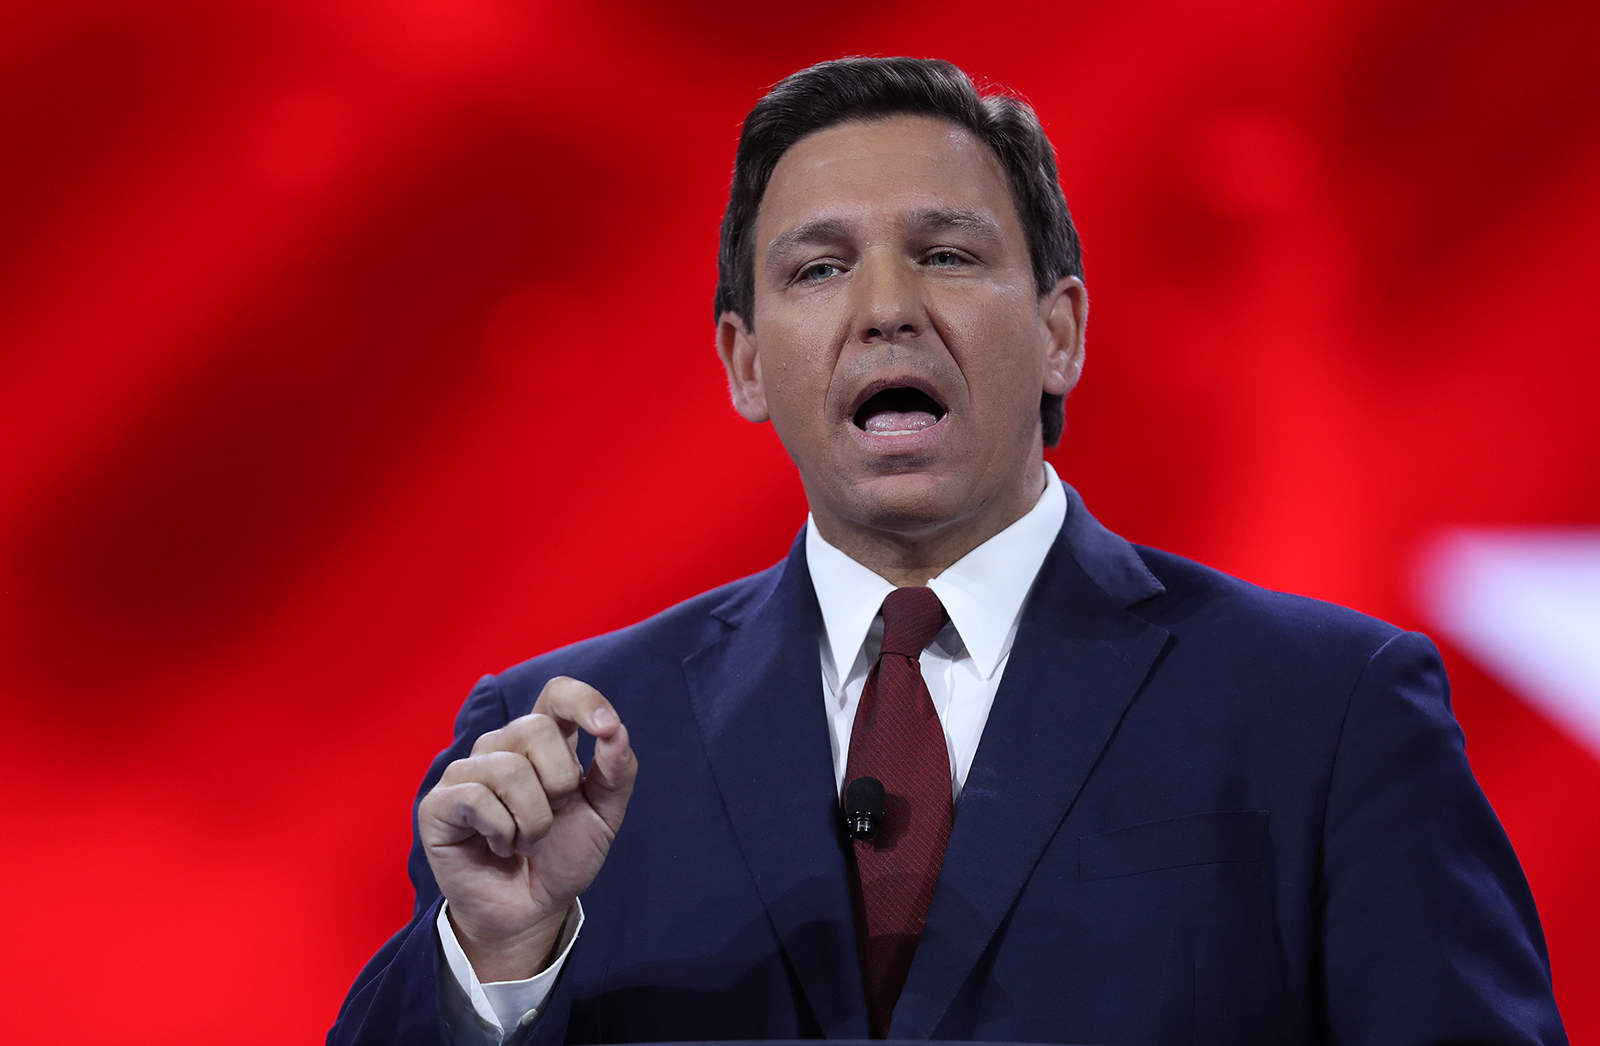 Ron DeSantis is on a path to 2024. Democrats hope to head him off.